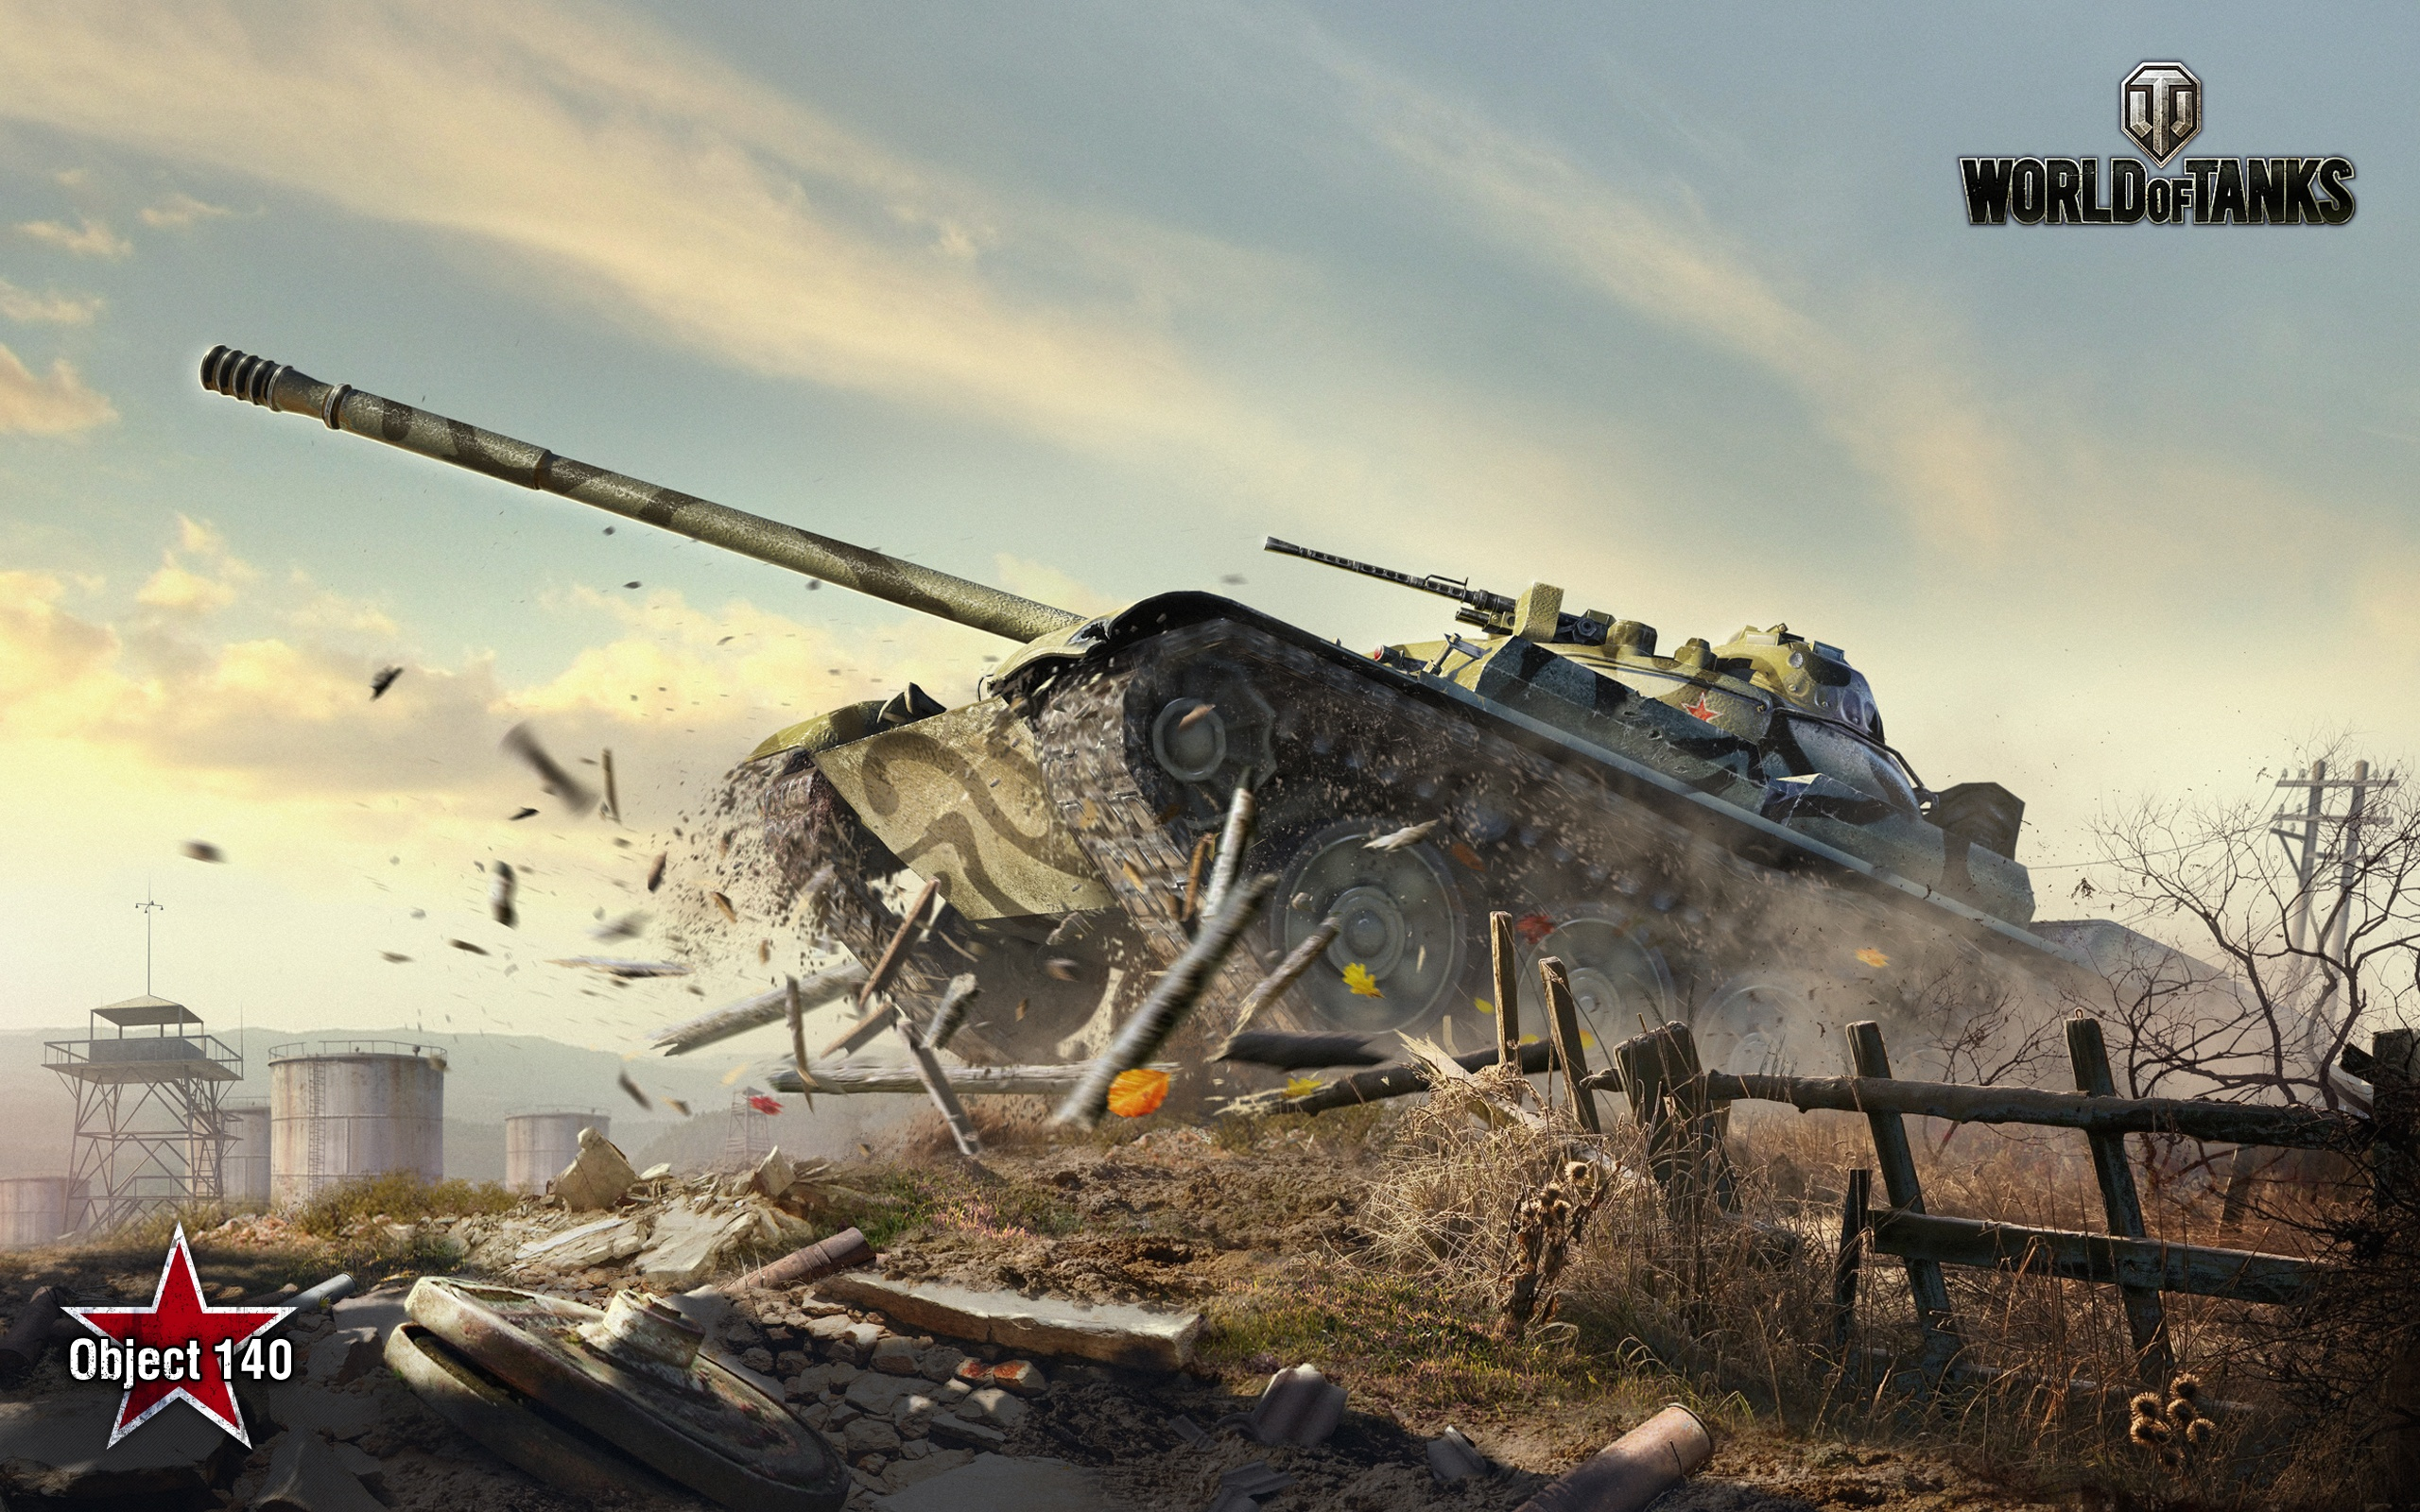 obj 140 world of tanks wallpapers in jpg format for free download